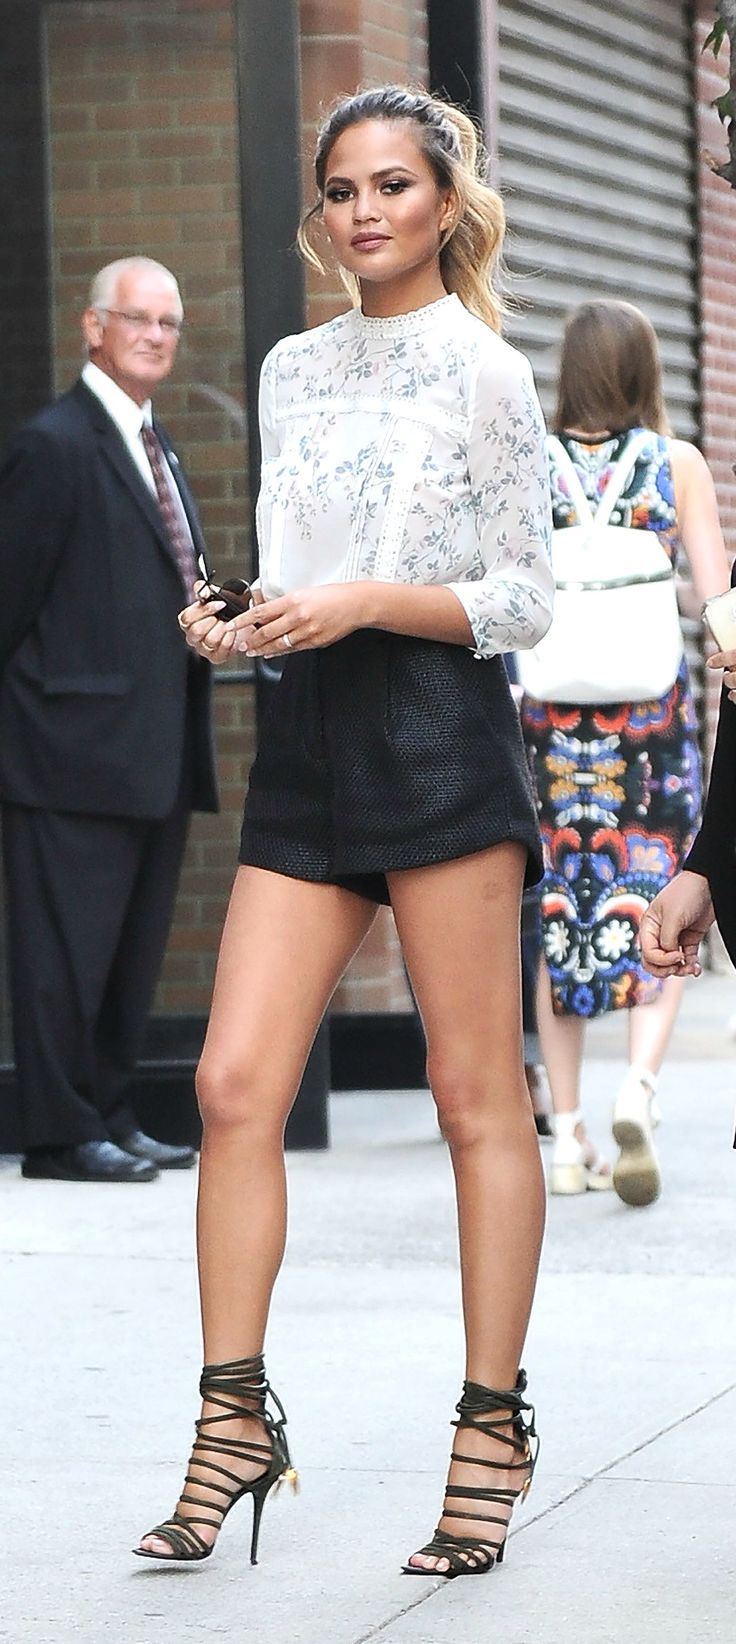 Celebrity Style at New York Fashion Week Spring 2016 - Chrissy Teigen wearing a high-neck prairie shirt, high-waist shorts, and sexy lace-up heels | #trendygirl